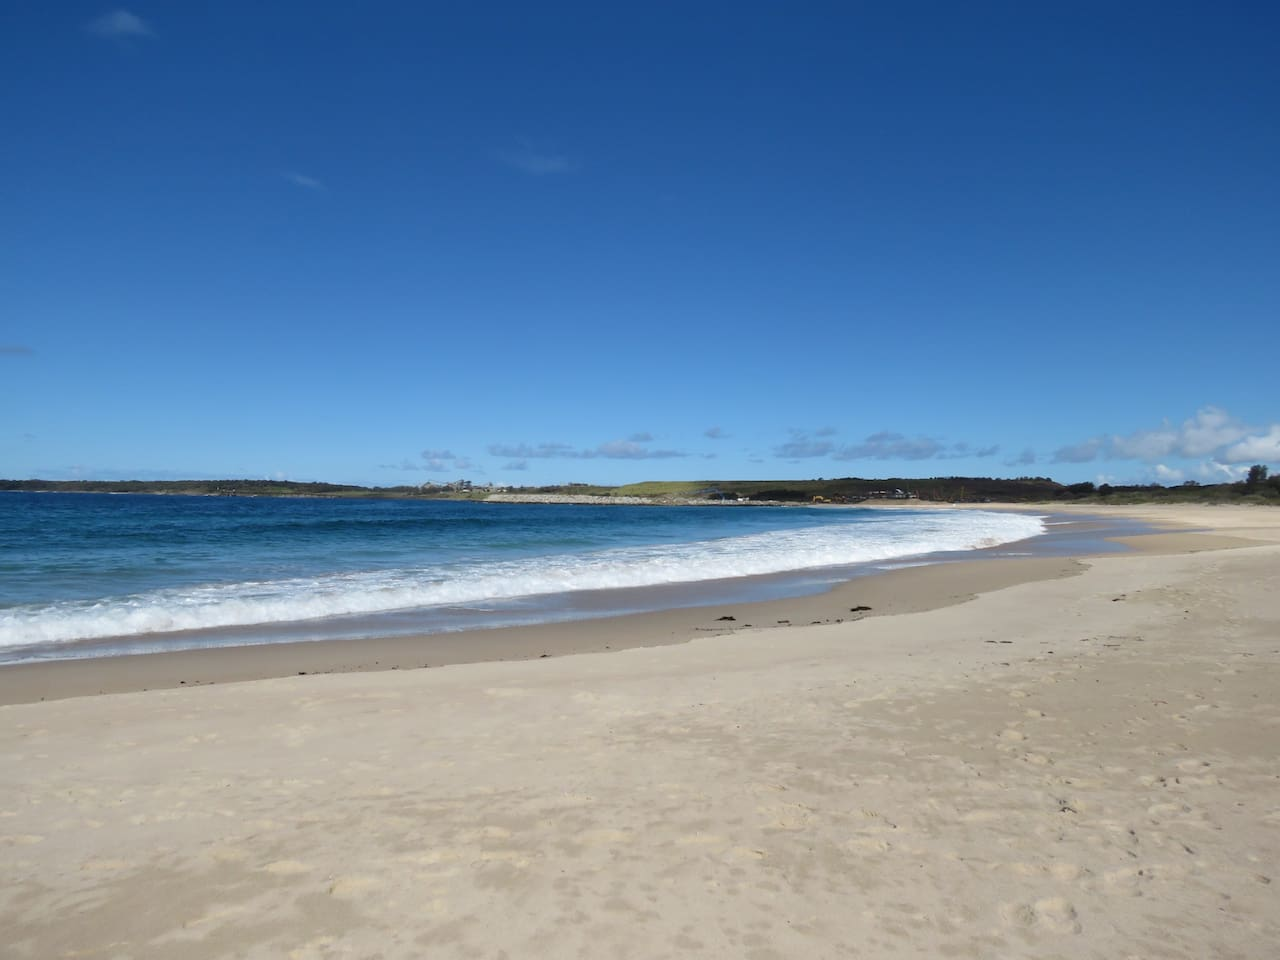 Shellharbour Sth beach looking down towards the new marina currently under construction